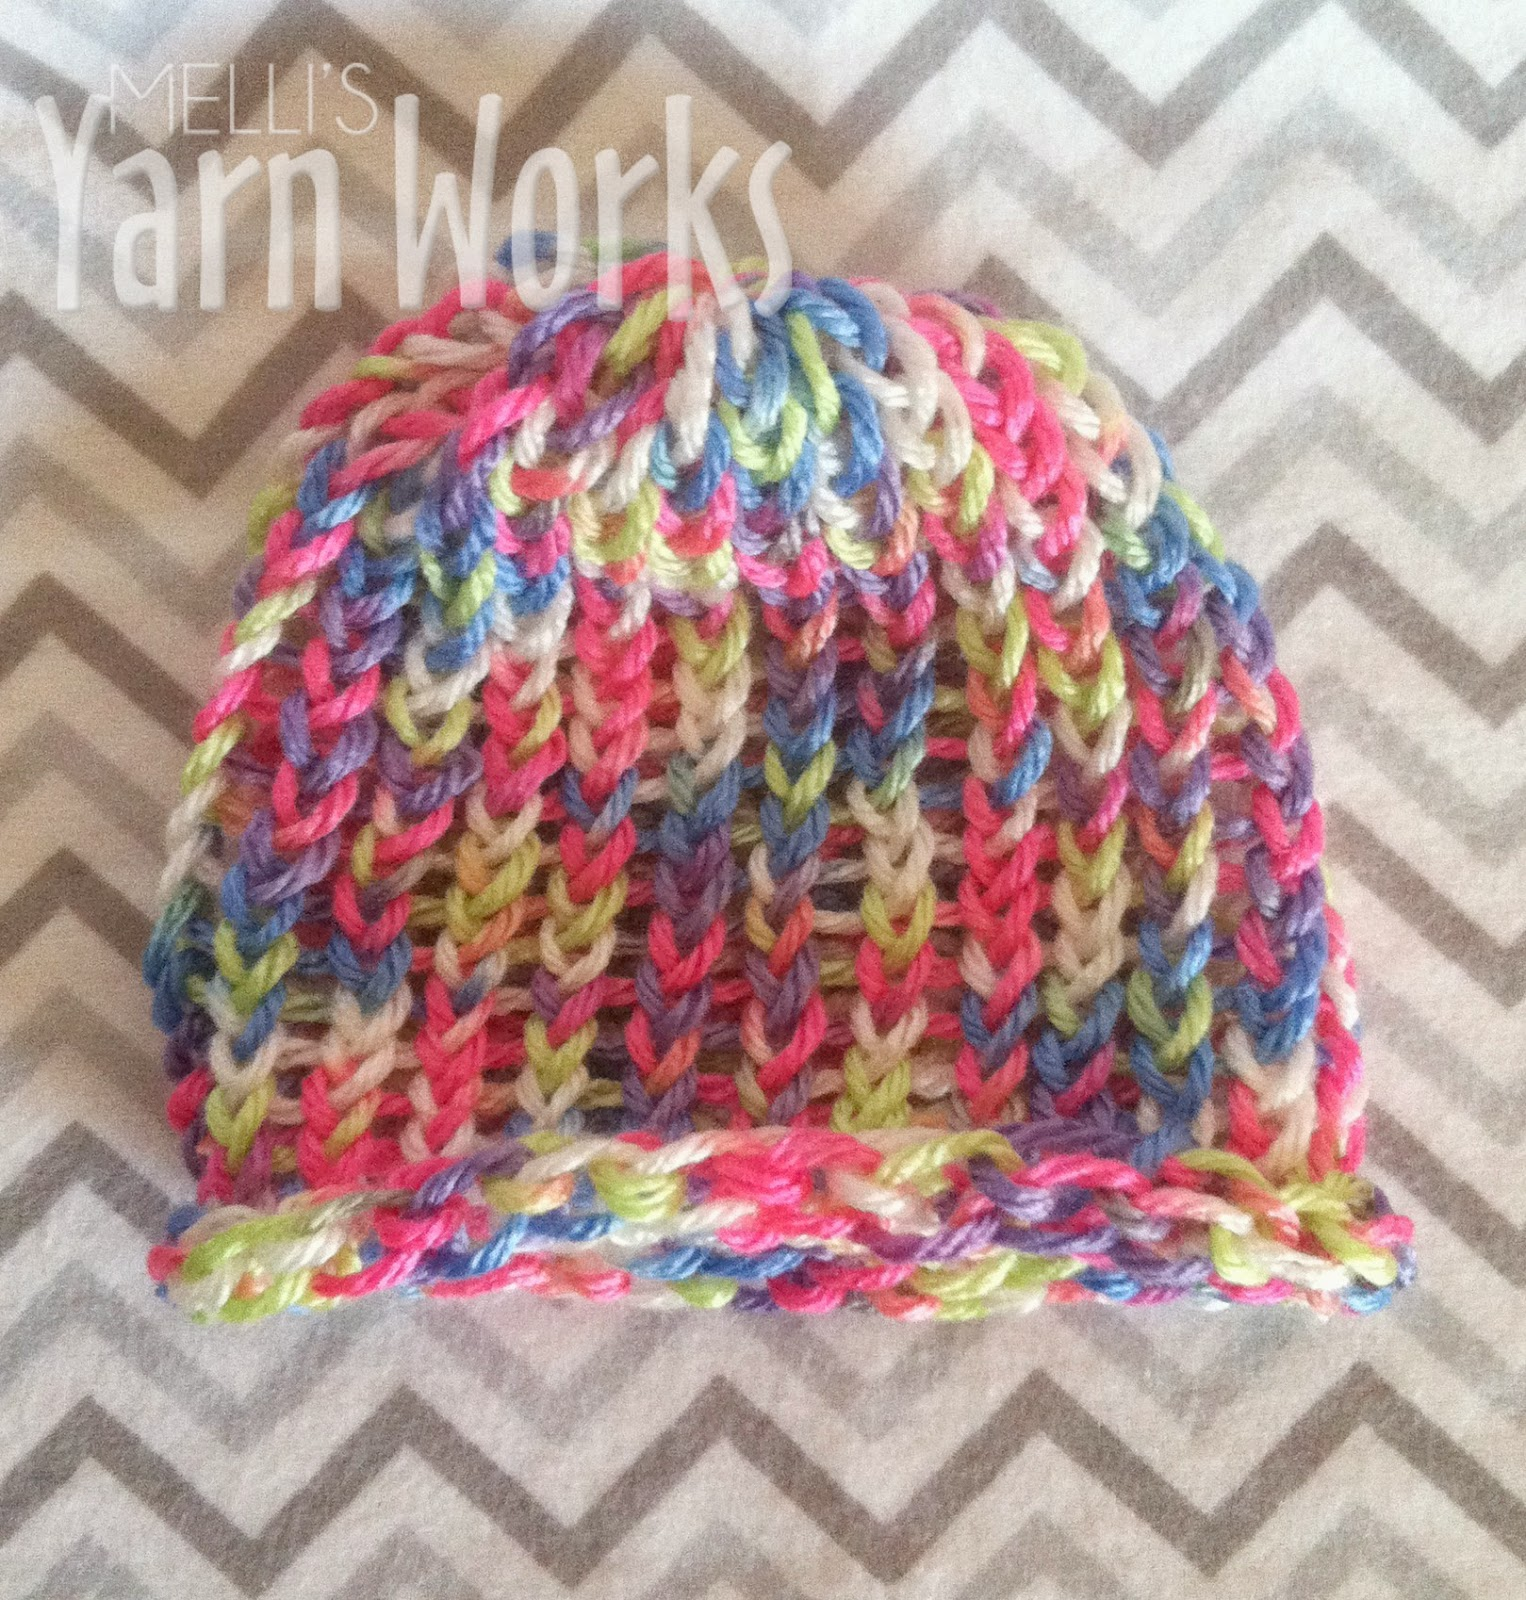 http://mellisyarnworks.storenvy.com/collections/155996-hats/products/7979445-giggles-newborn-hat